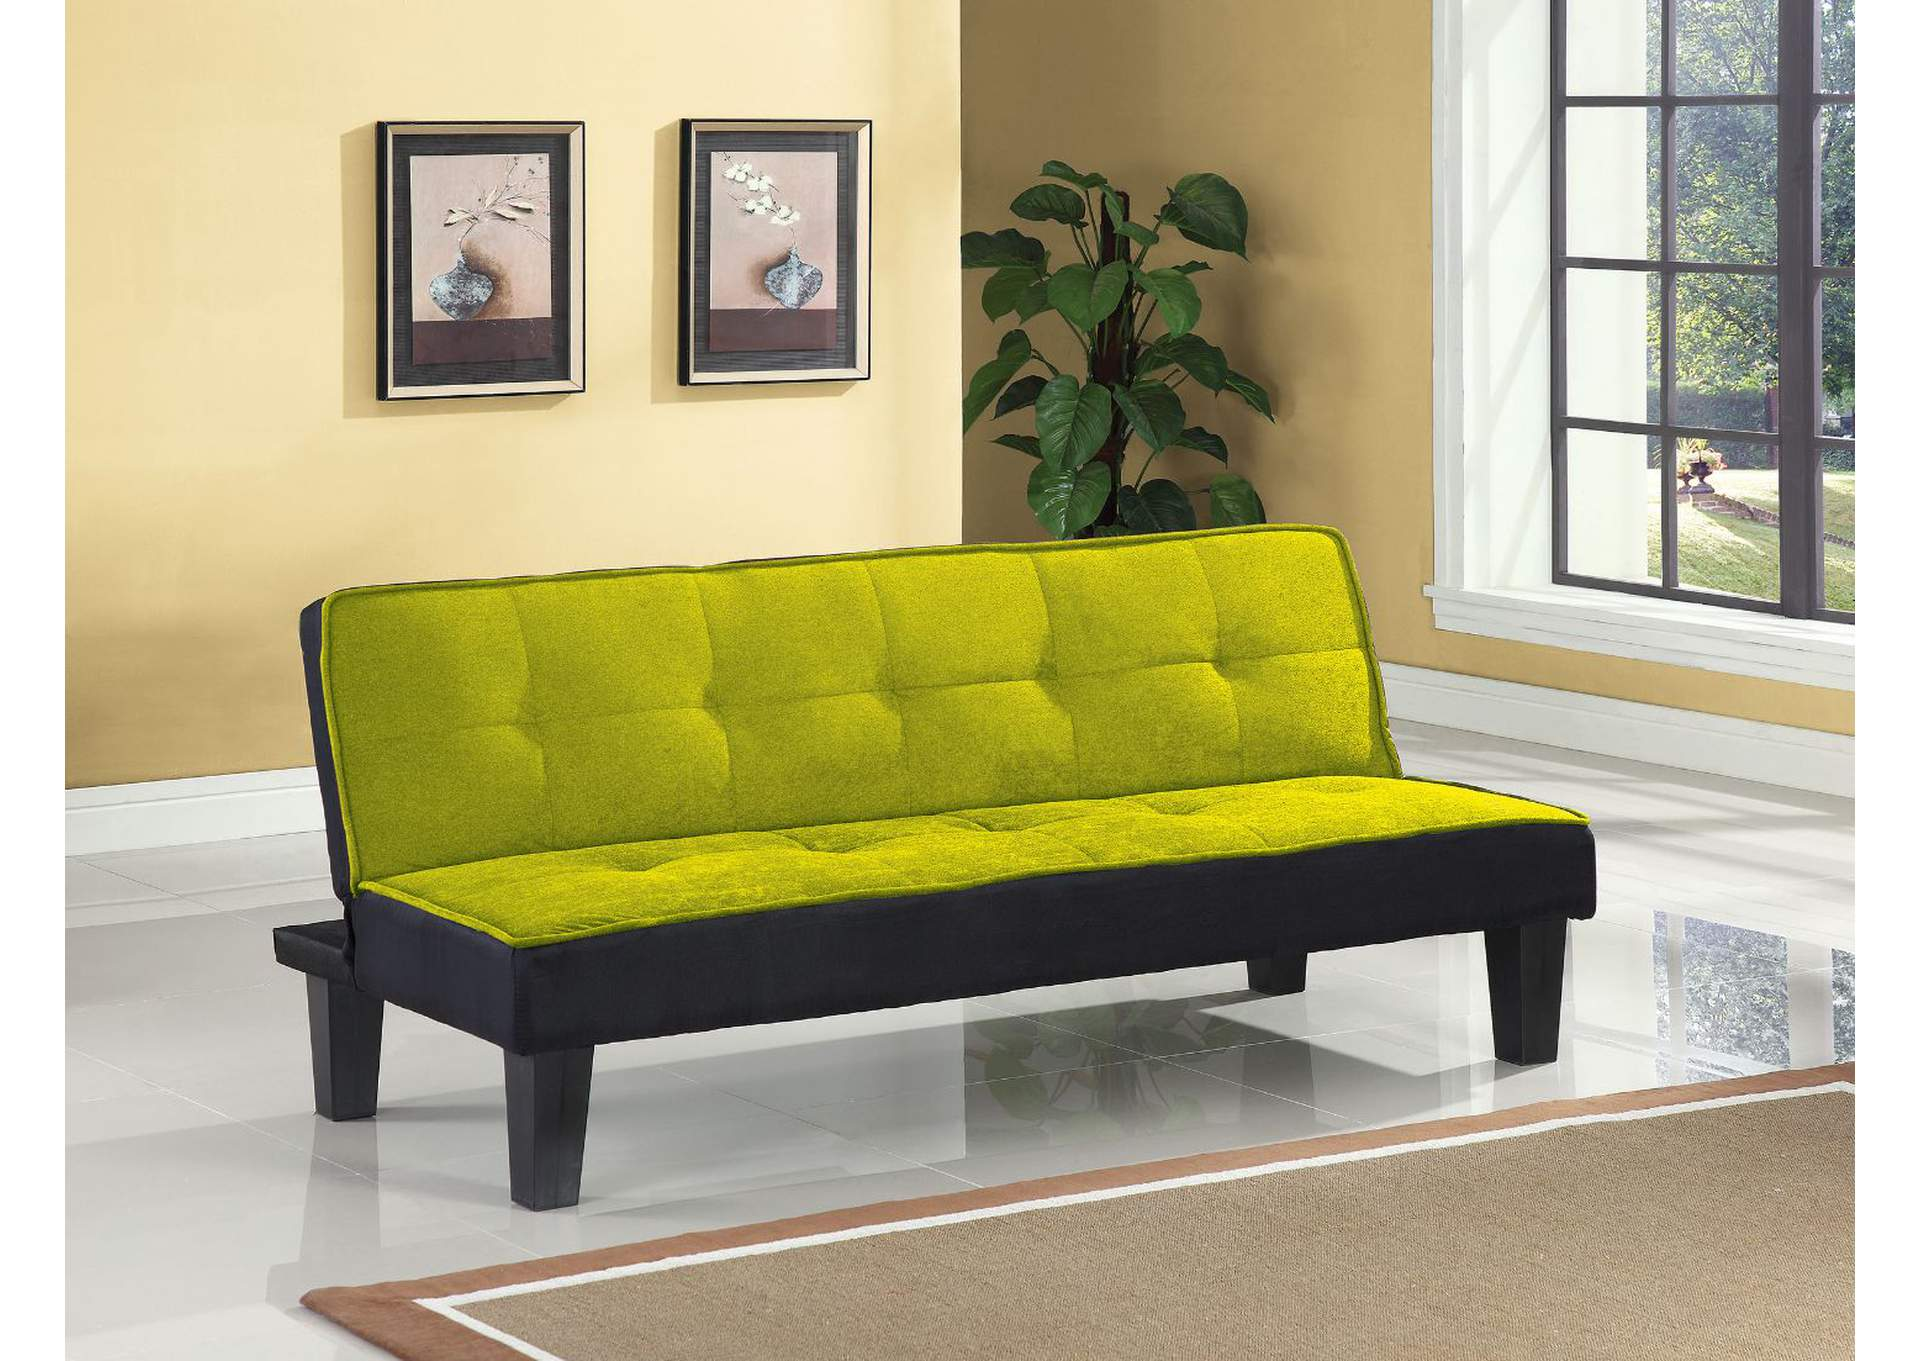 Hamar Green Flannel Fabric Futon,Acme